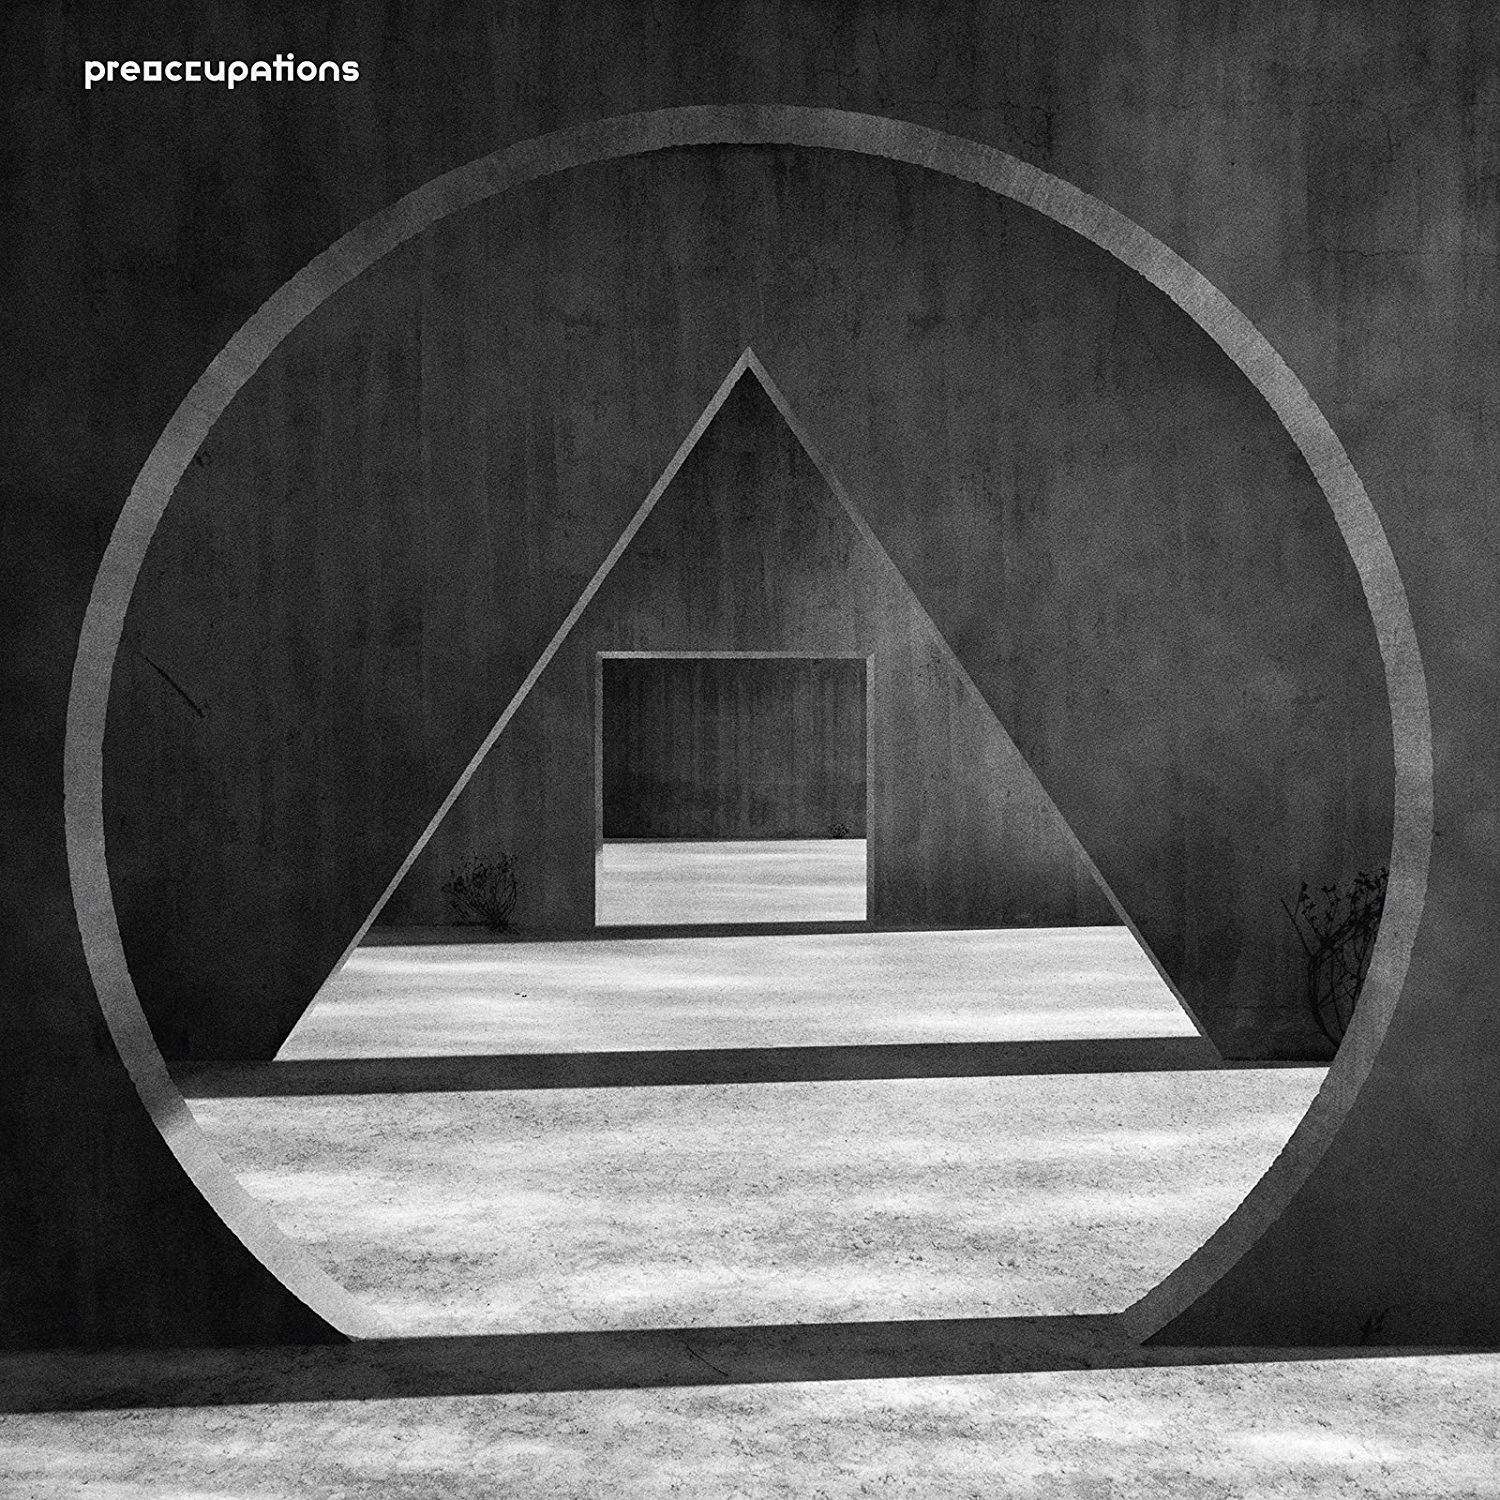 Preoccupations - New Material [Colored Vinyl]